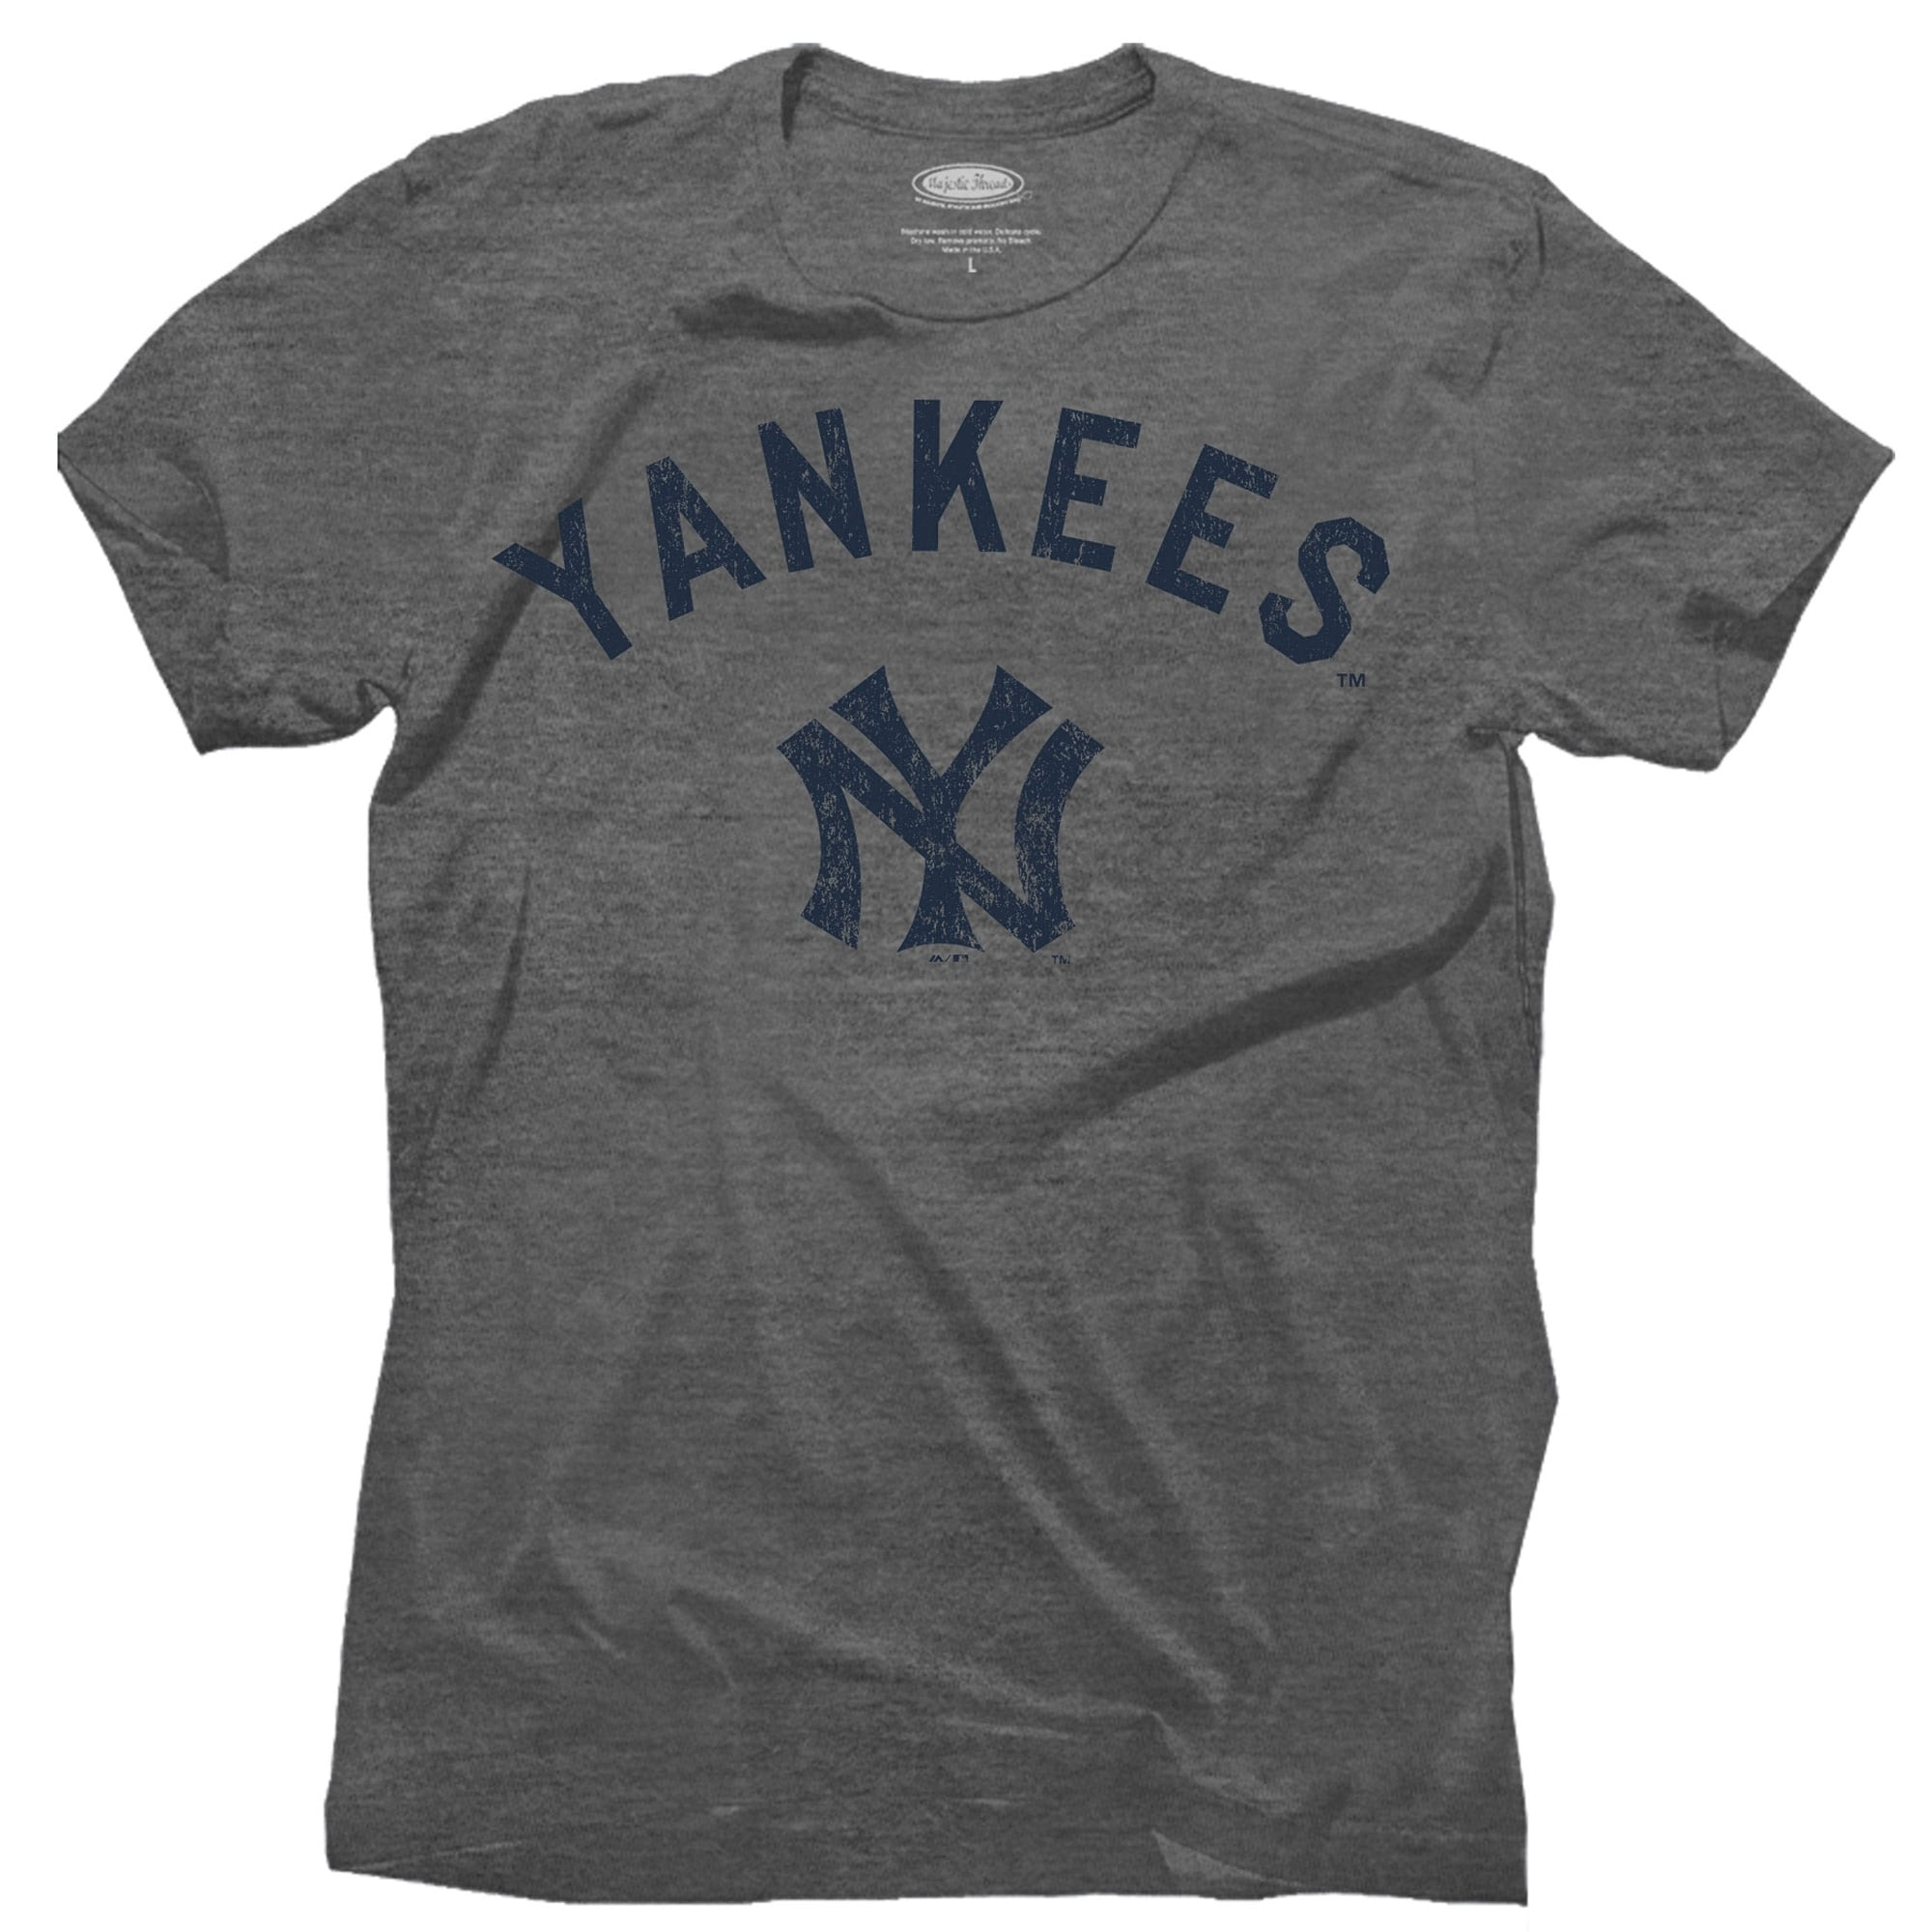 New York Yankees Majestic Threads Granite Tri-Blend Crew T-Shirt - Gray